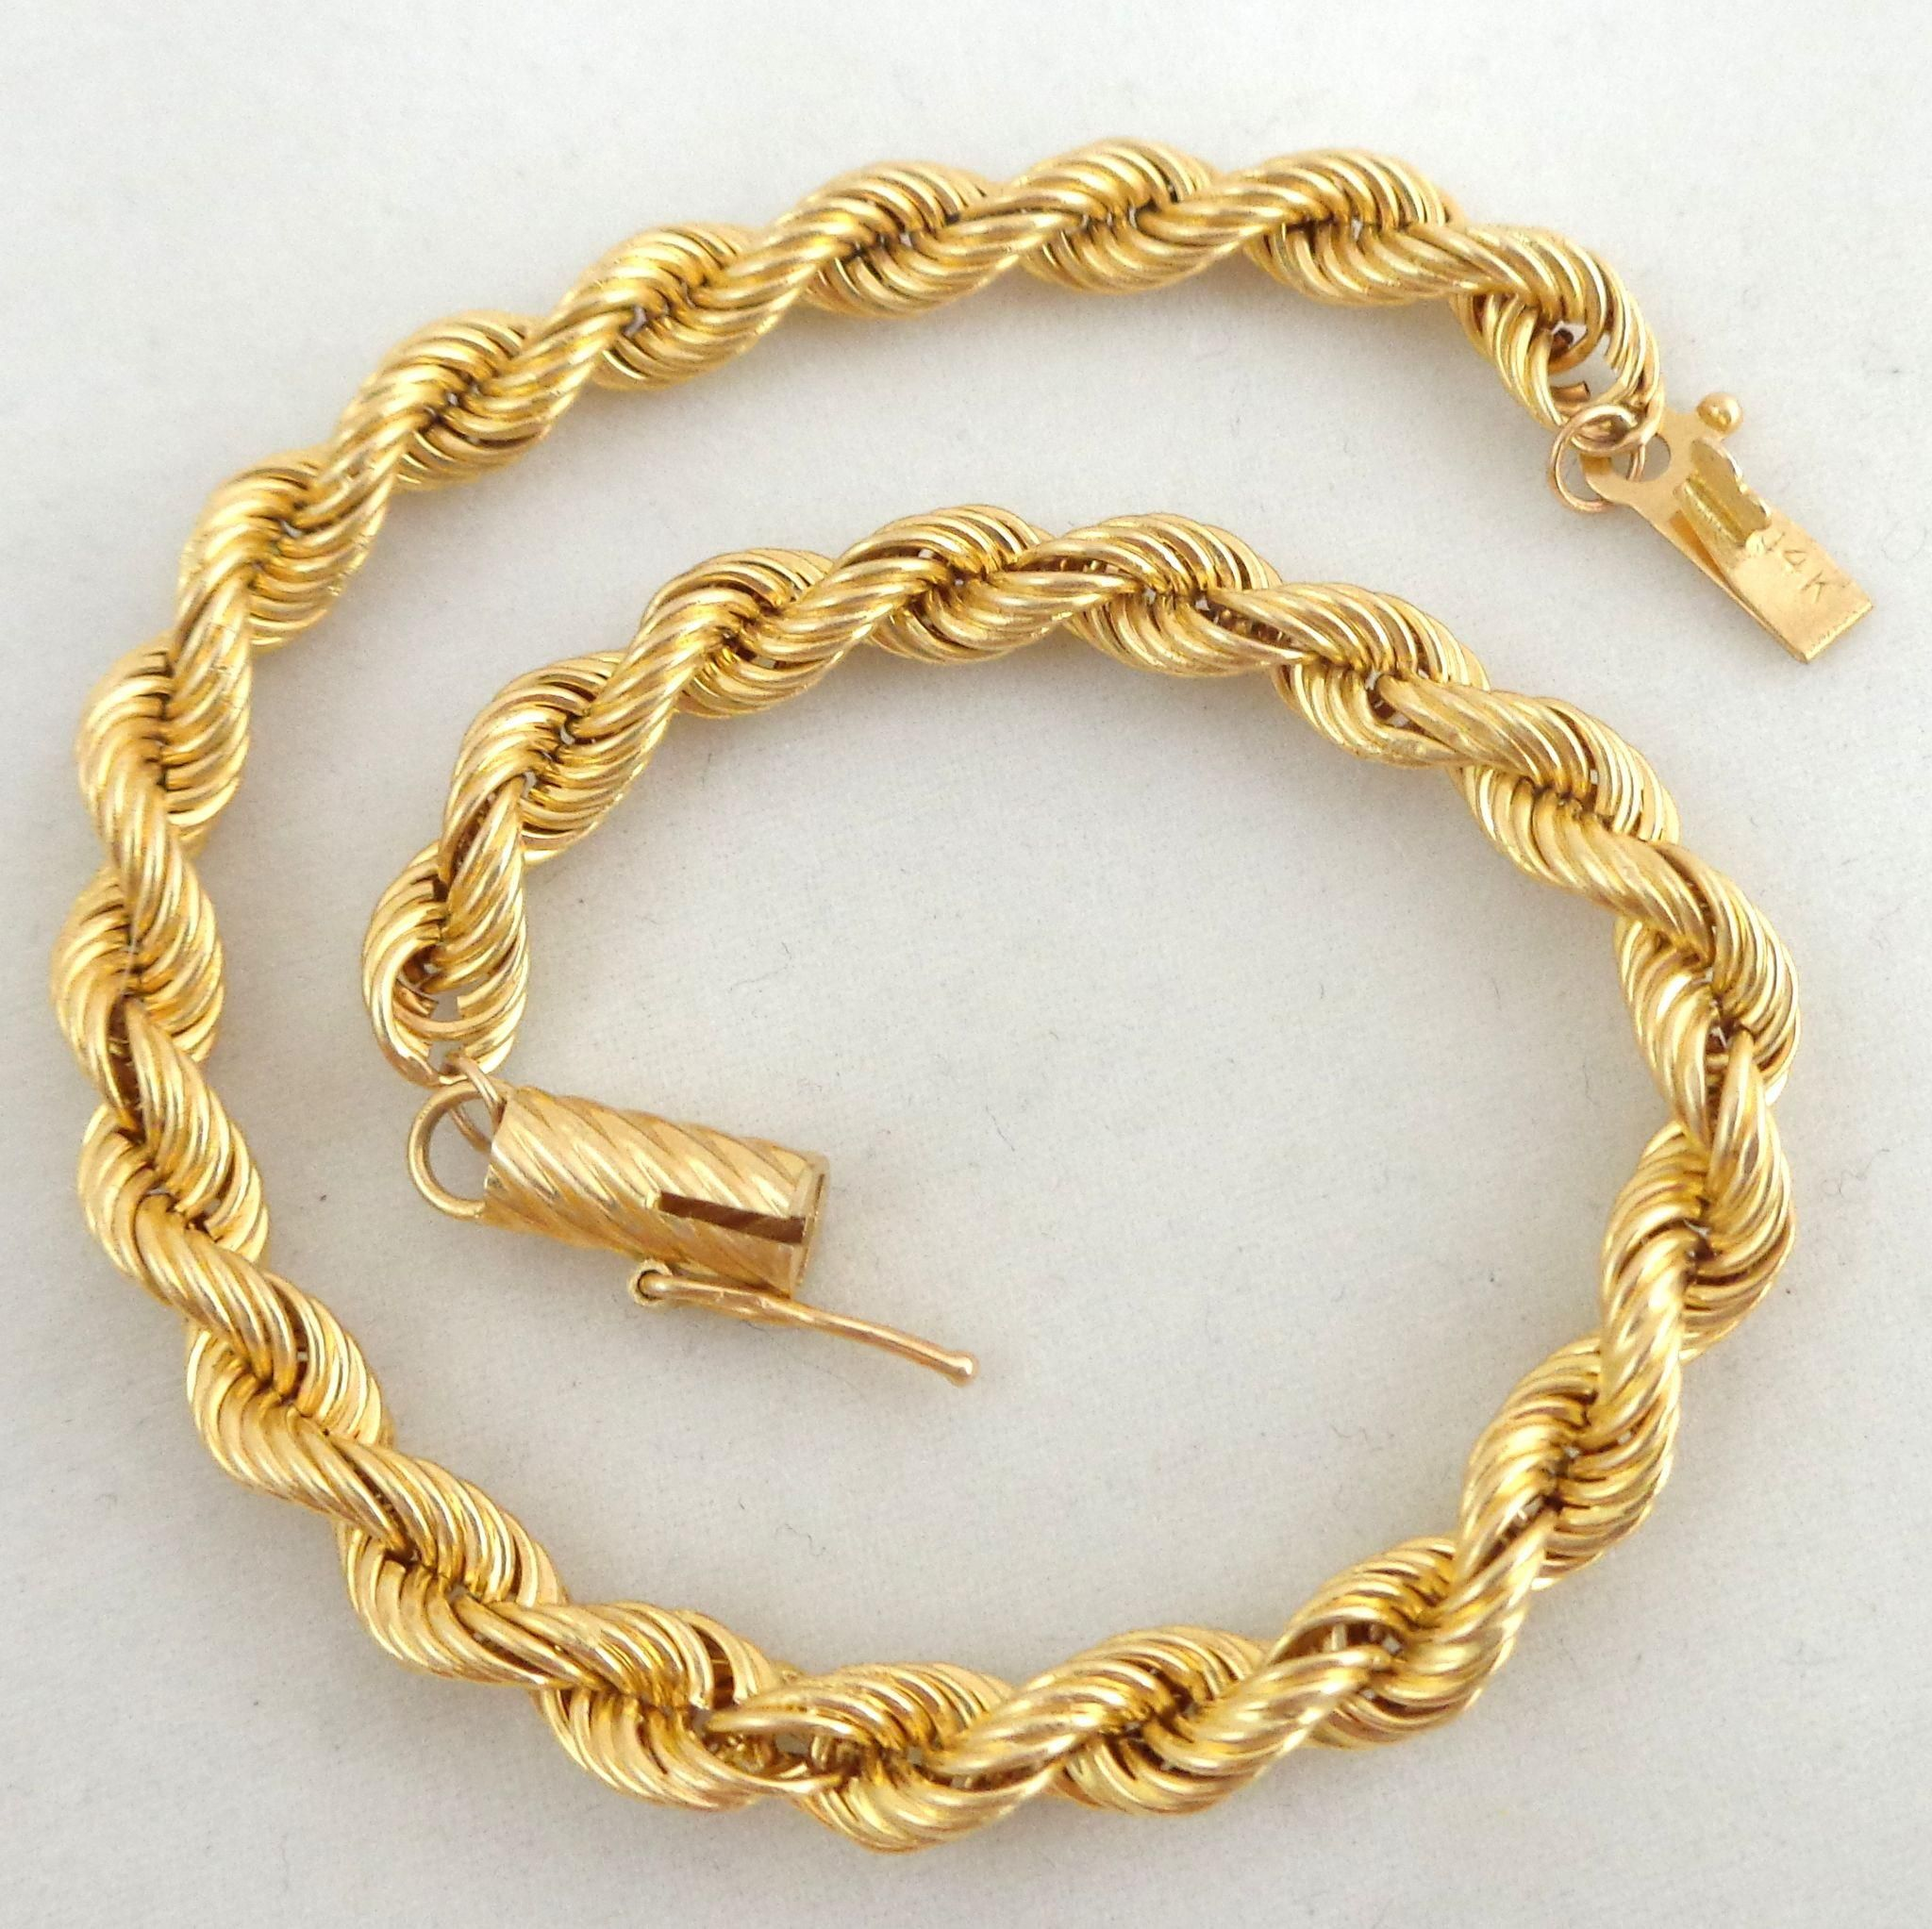 silky chain pin inch bangle super gold bracelet flexible yellow herringbone bangles